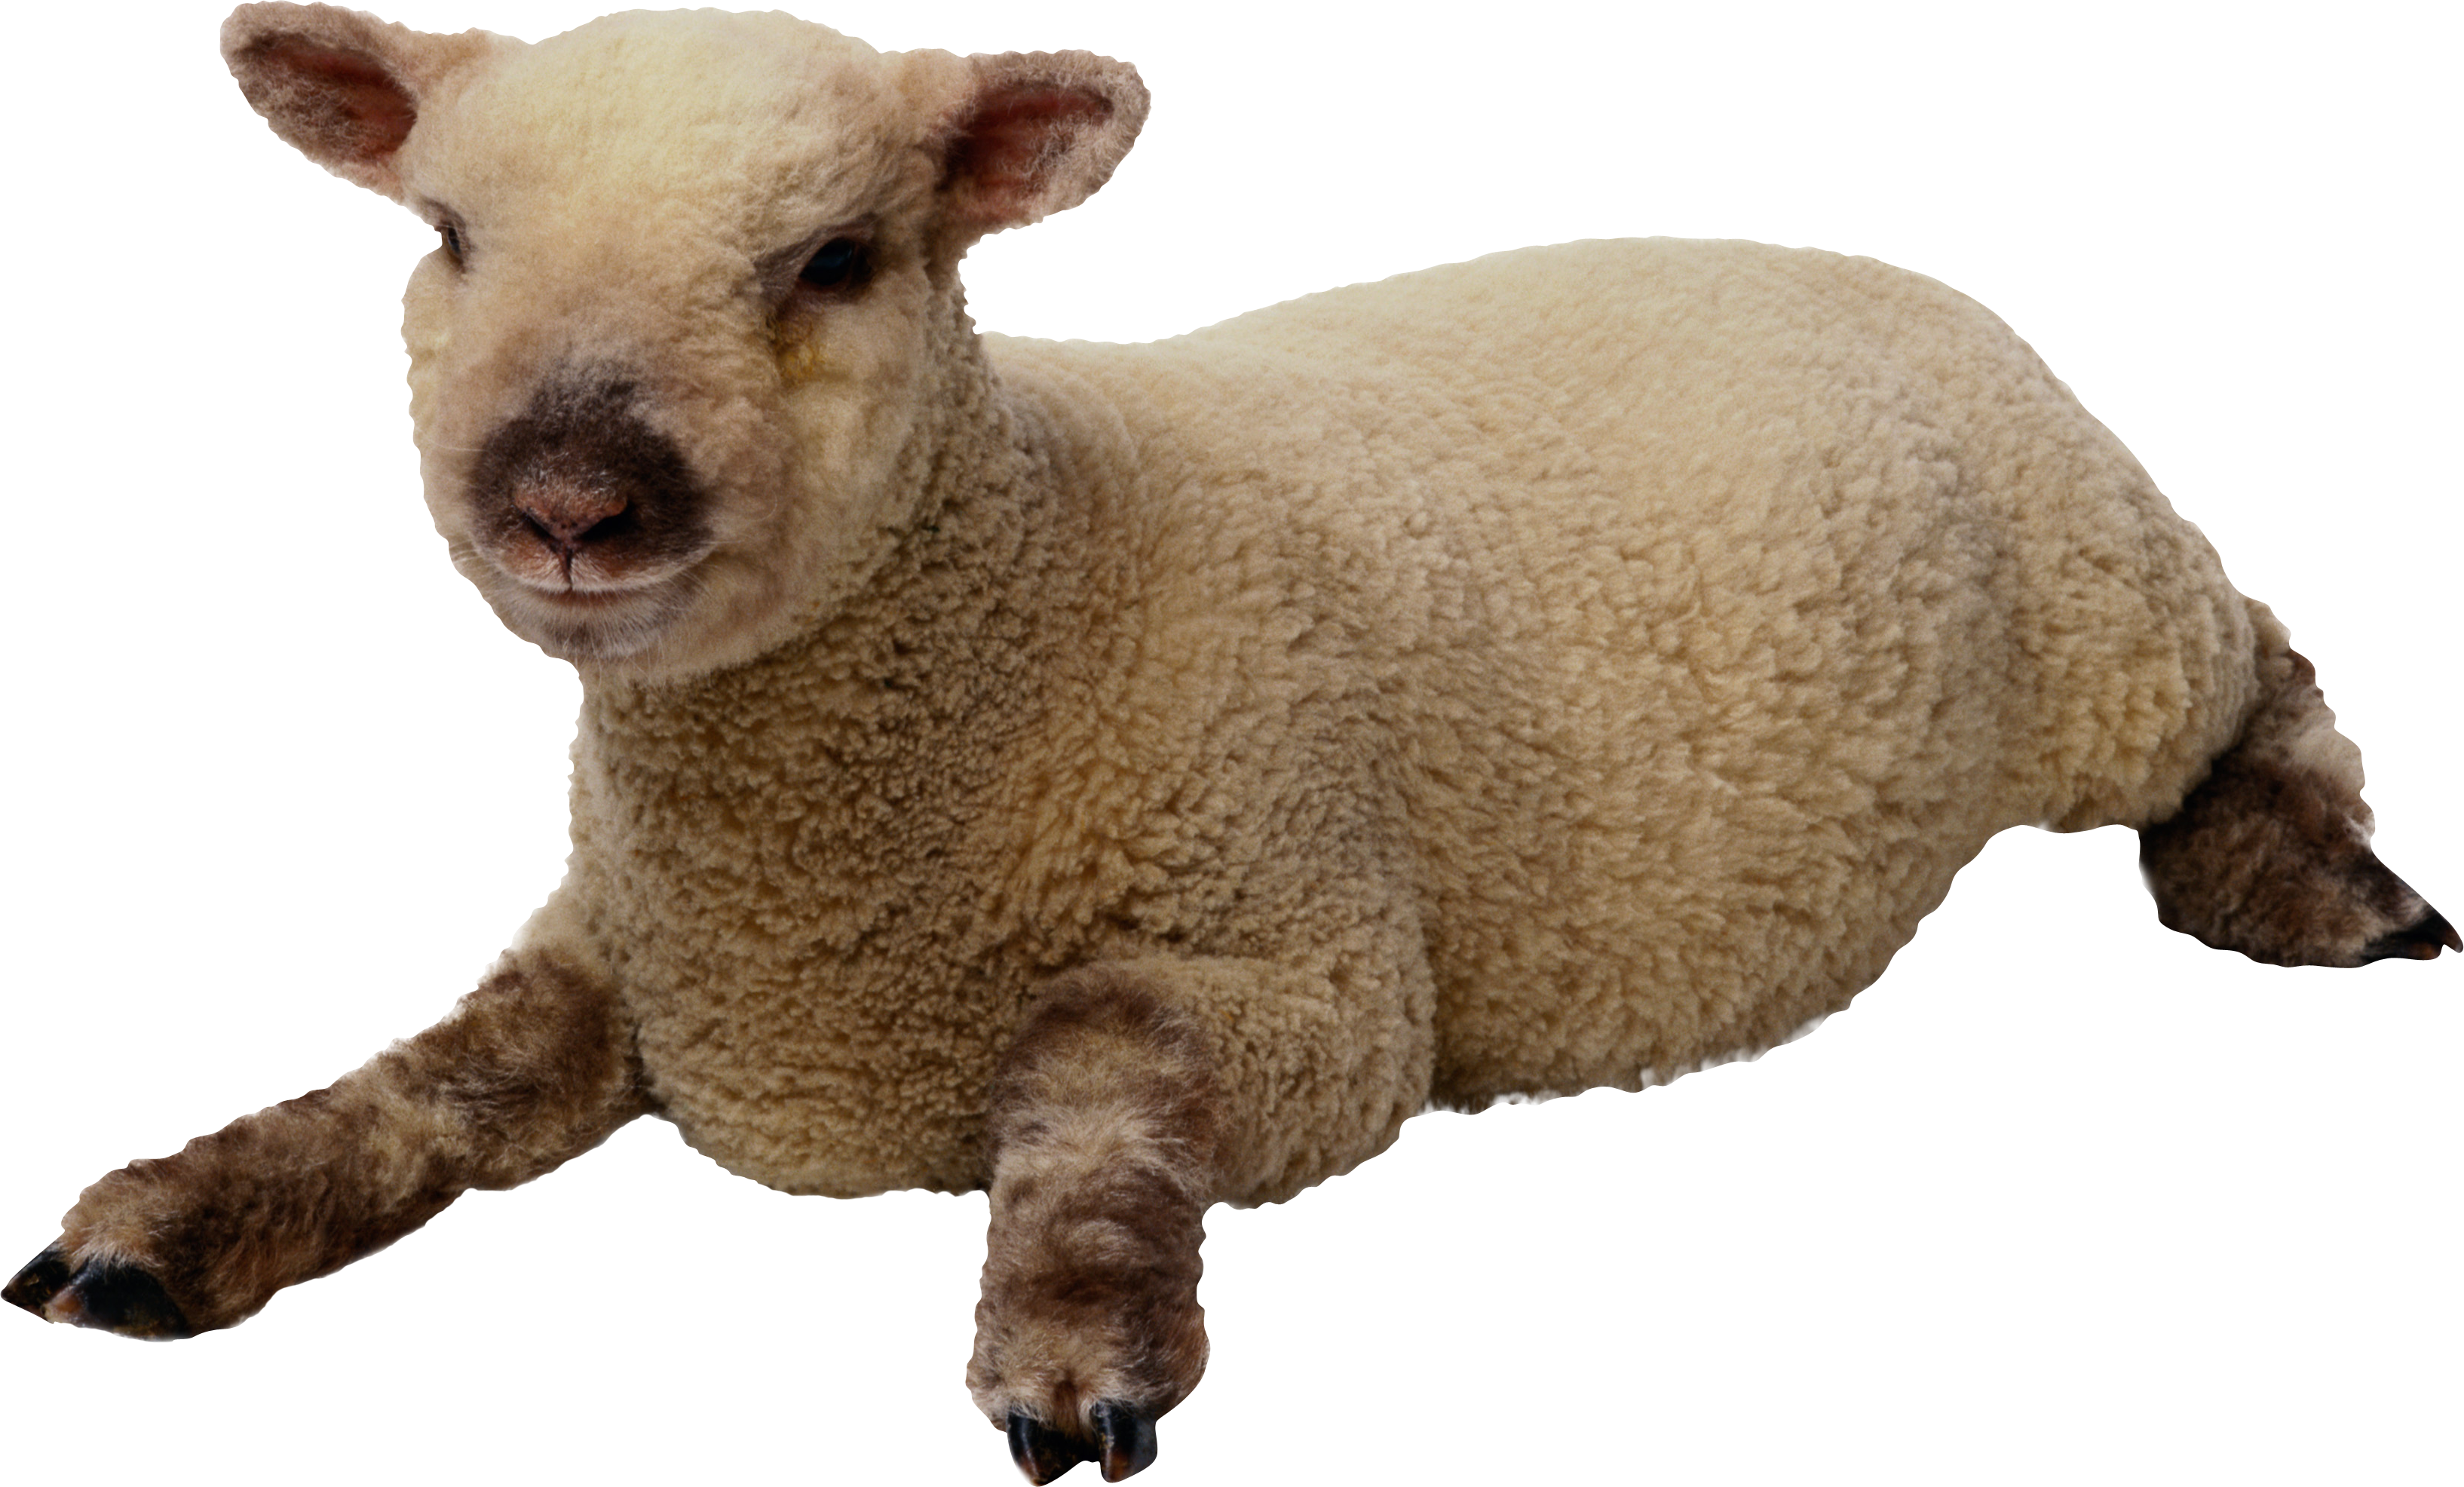 Lamb clipart dolly sheep. Images best free icons